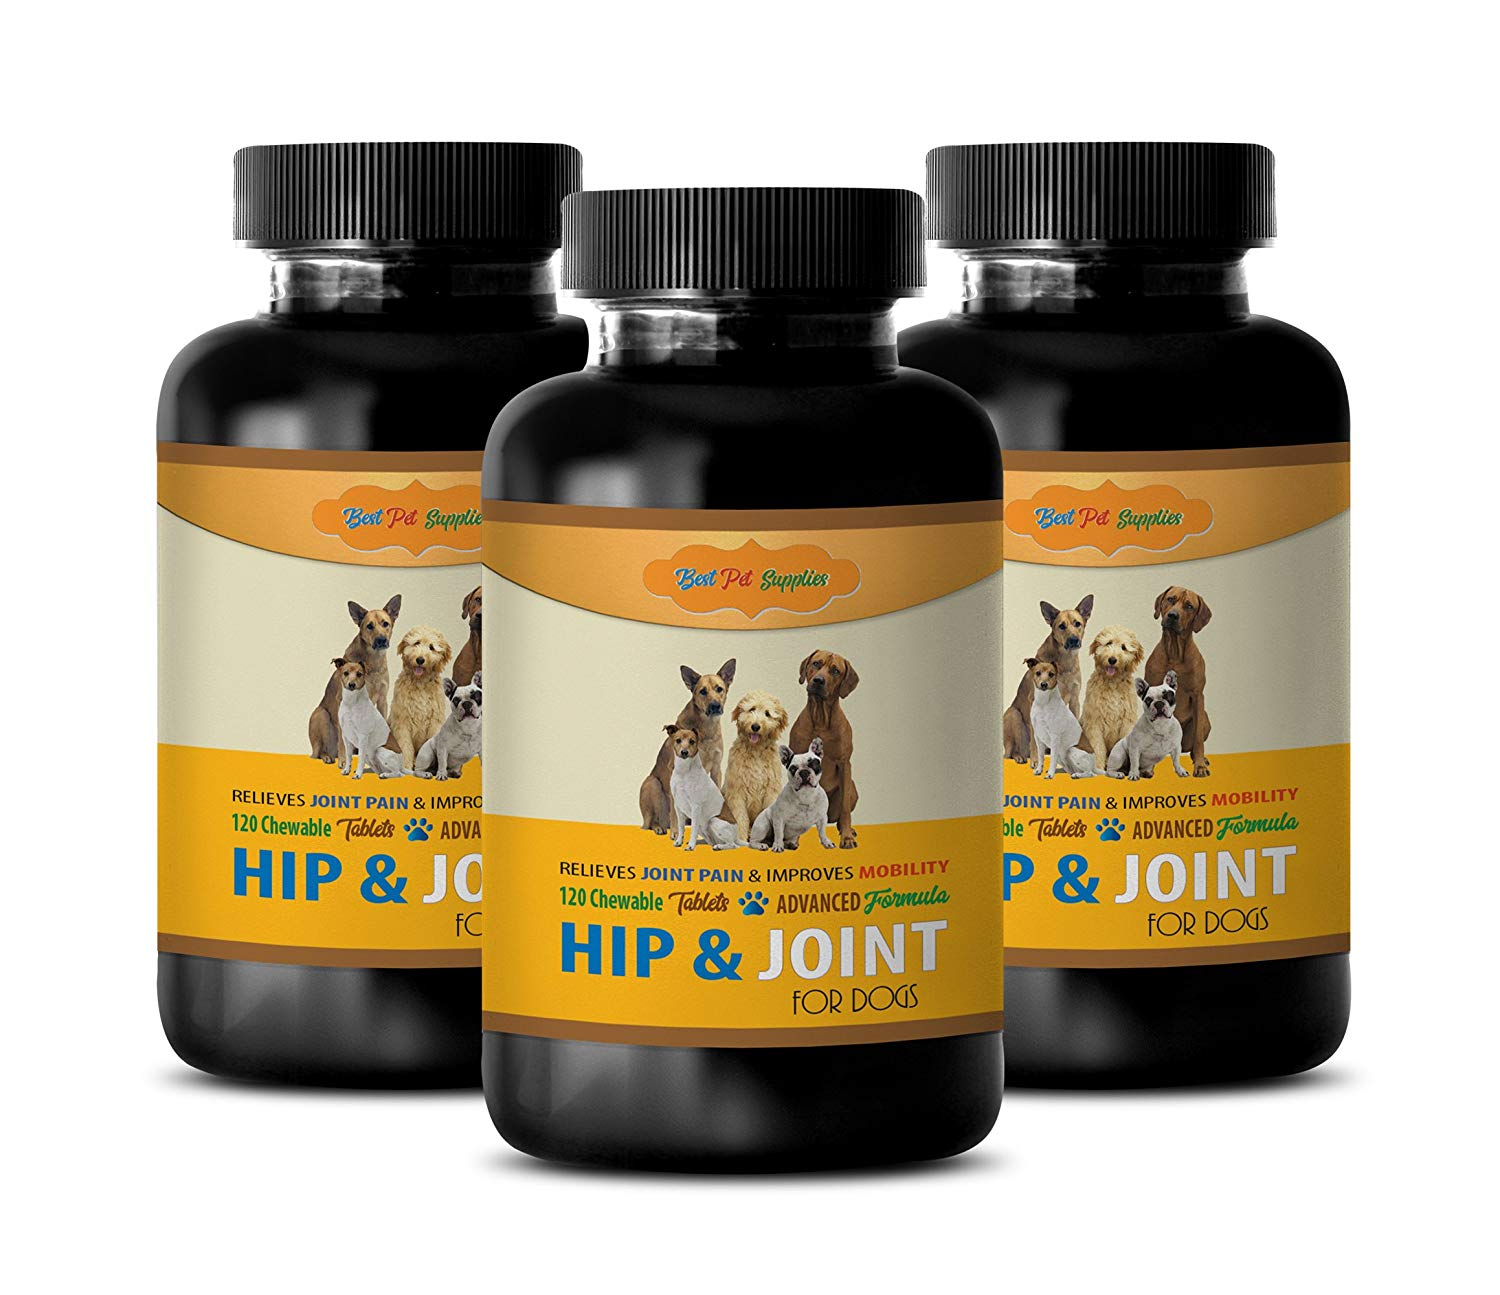 BEST PET SUPPLIES LLC puppy joint health supplement - NATURAL HIP AND JOINT COMPLEX - DOGS FORMULA - PREMIUM TREATS - msm for dogs joint support - 360 Chews (3 Bottle)